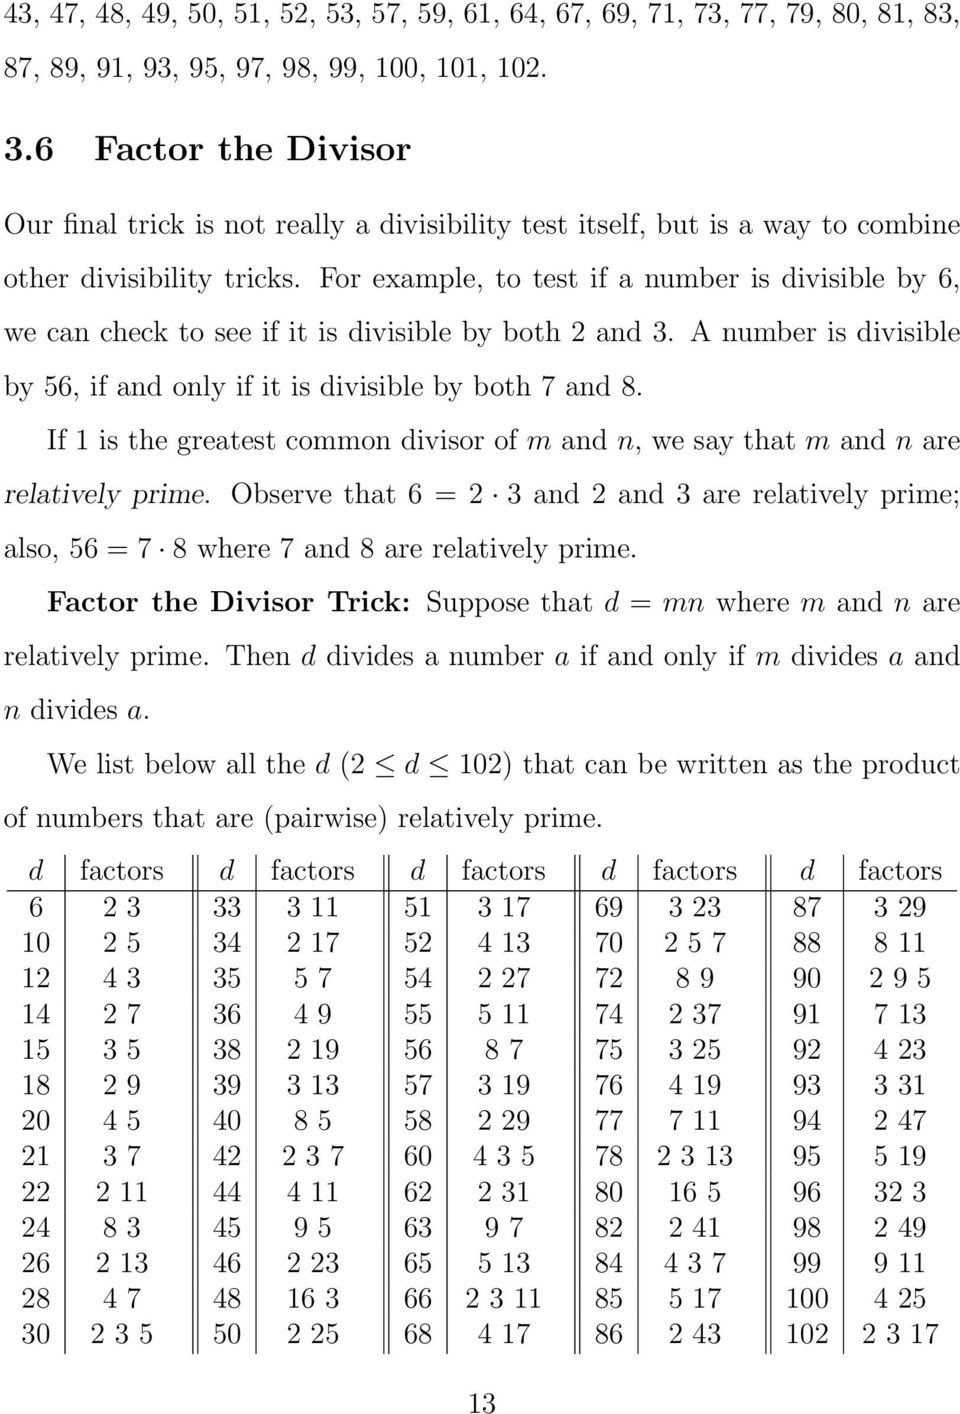 For example, to test if a number is divisible by 6, we can check to see if it is divisible by both 2 and 3. A number is divisible by 56, if and only if it is divisible by both 7 and 8.